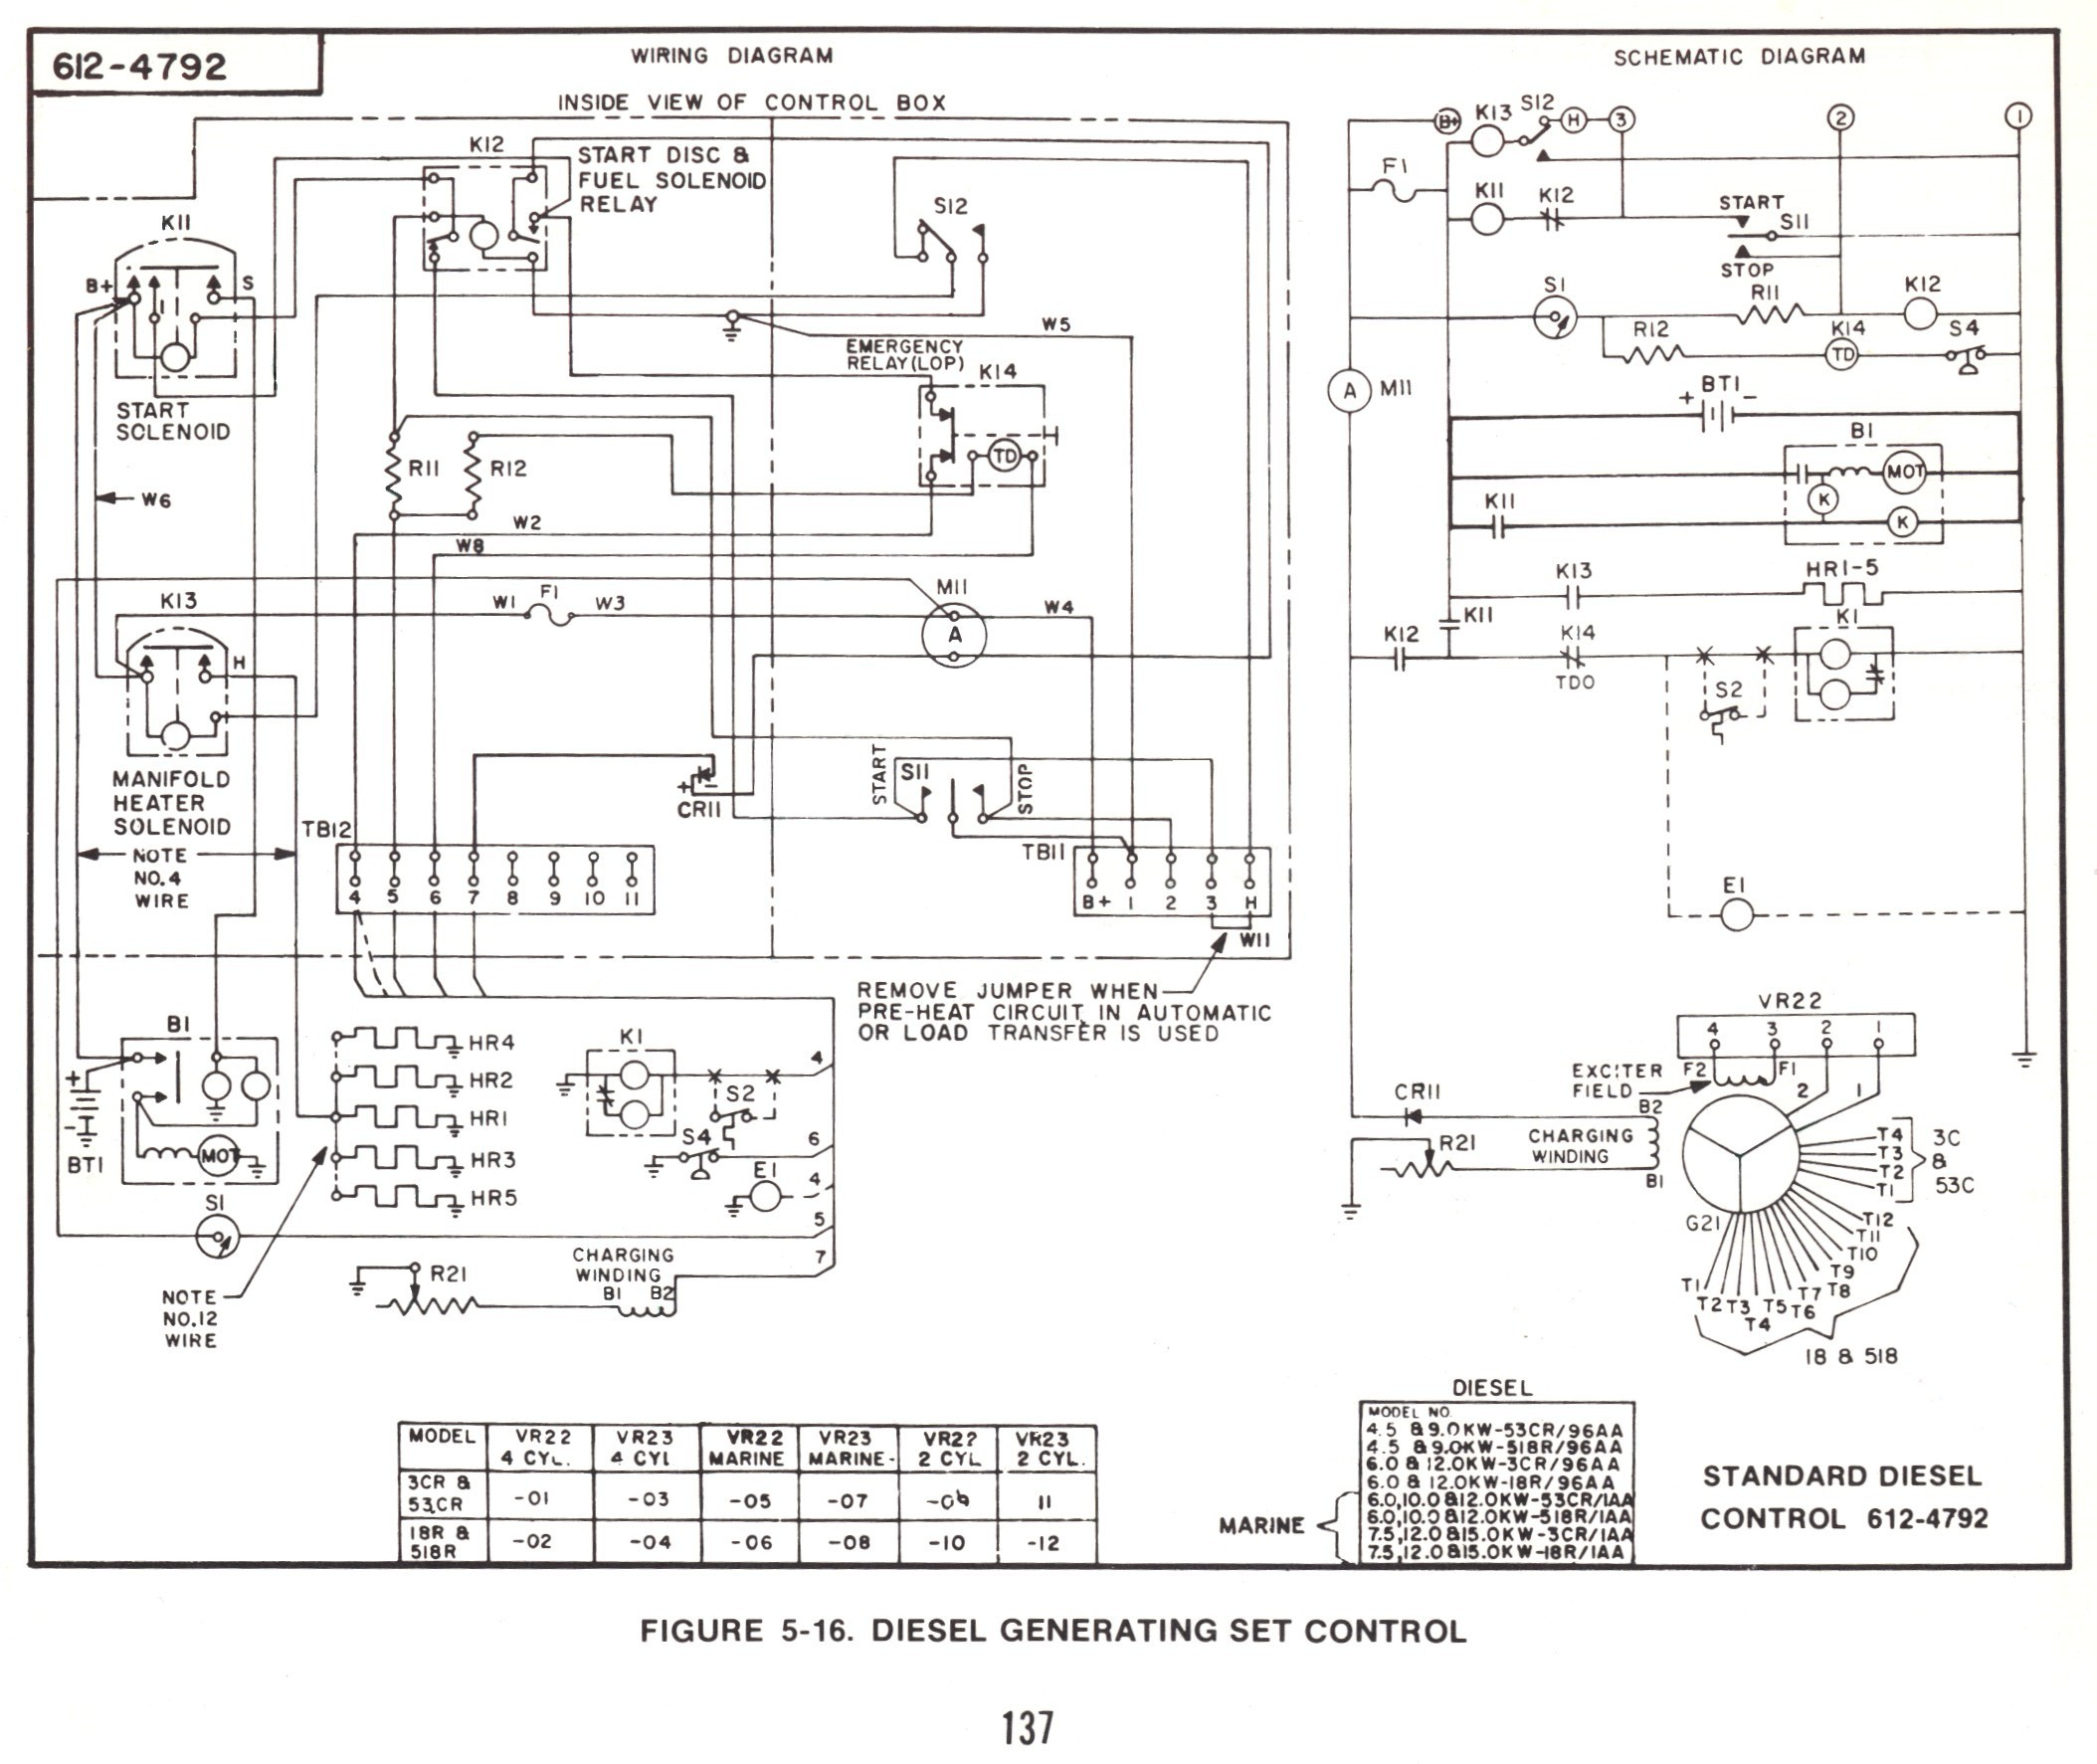 Onan P216 Wiring Diagram | Wiring Diagram Onan P G Wiring Diagram on